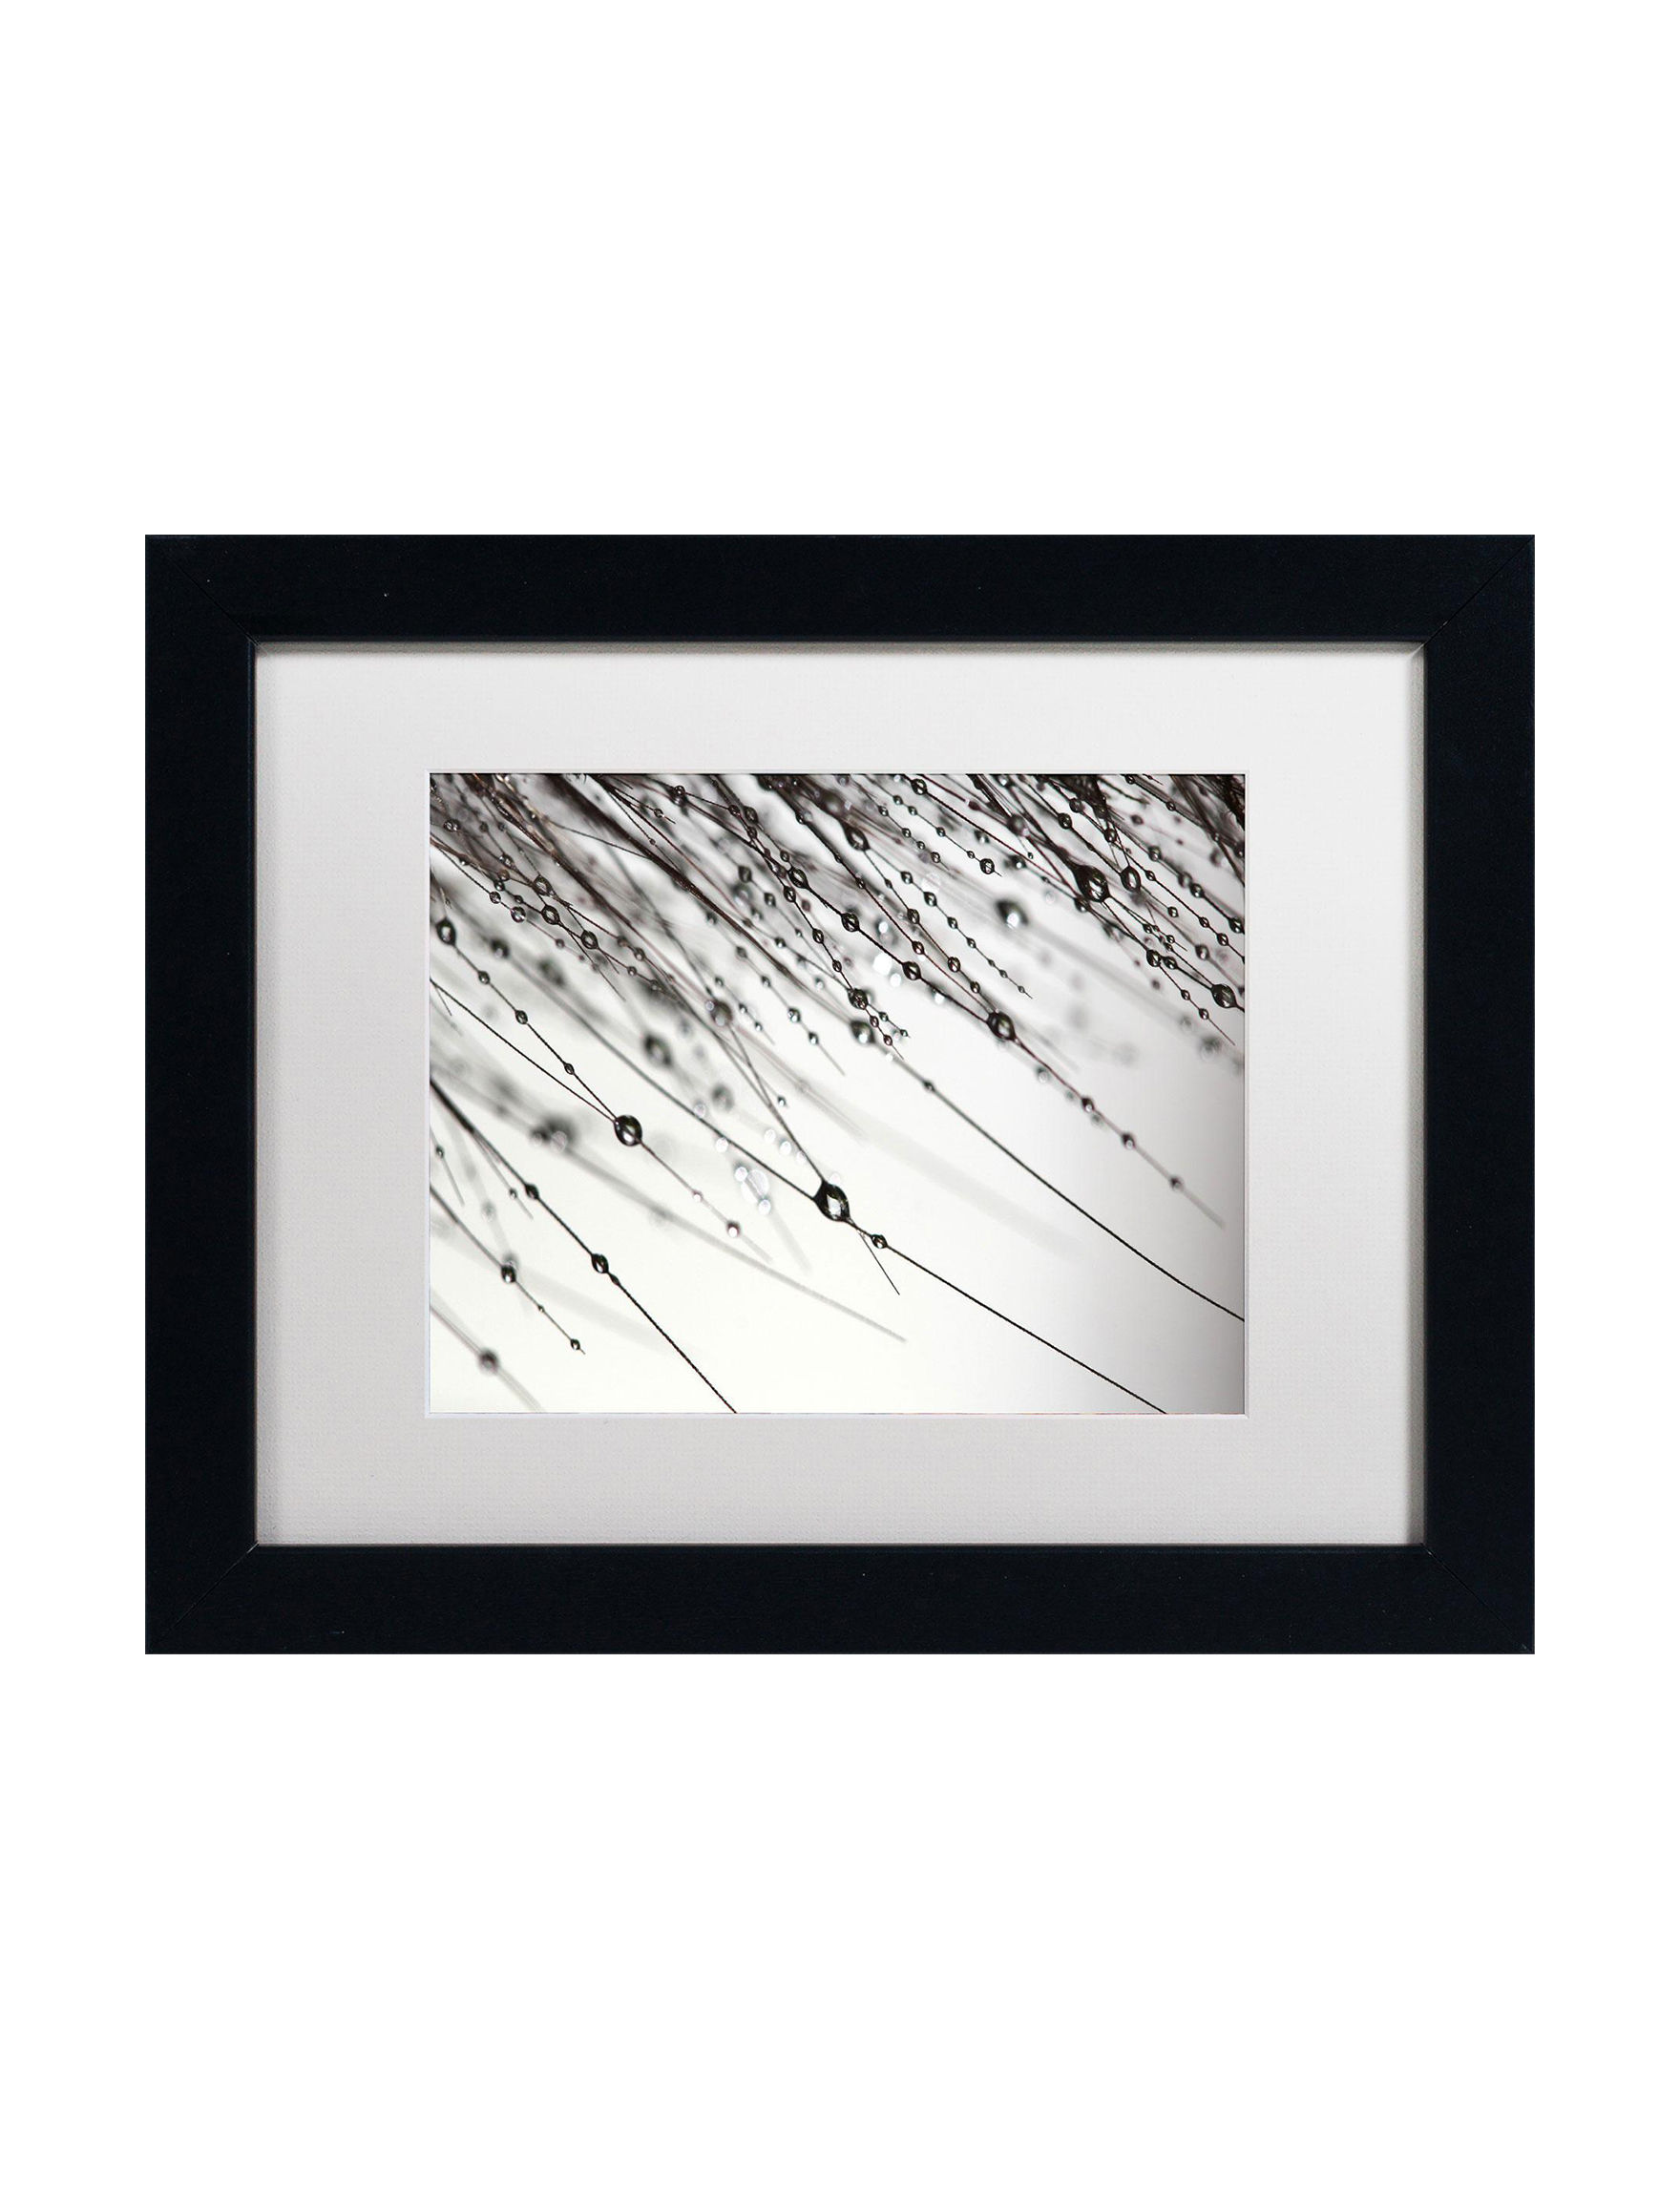 Trademark Fine Art Black / White Wall Art Wall Decor